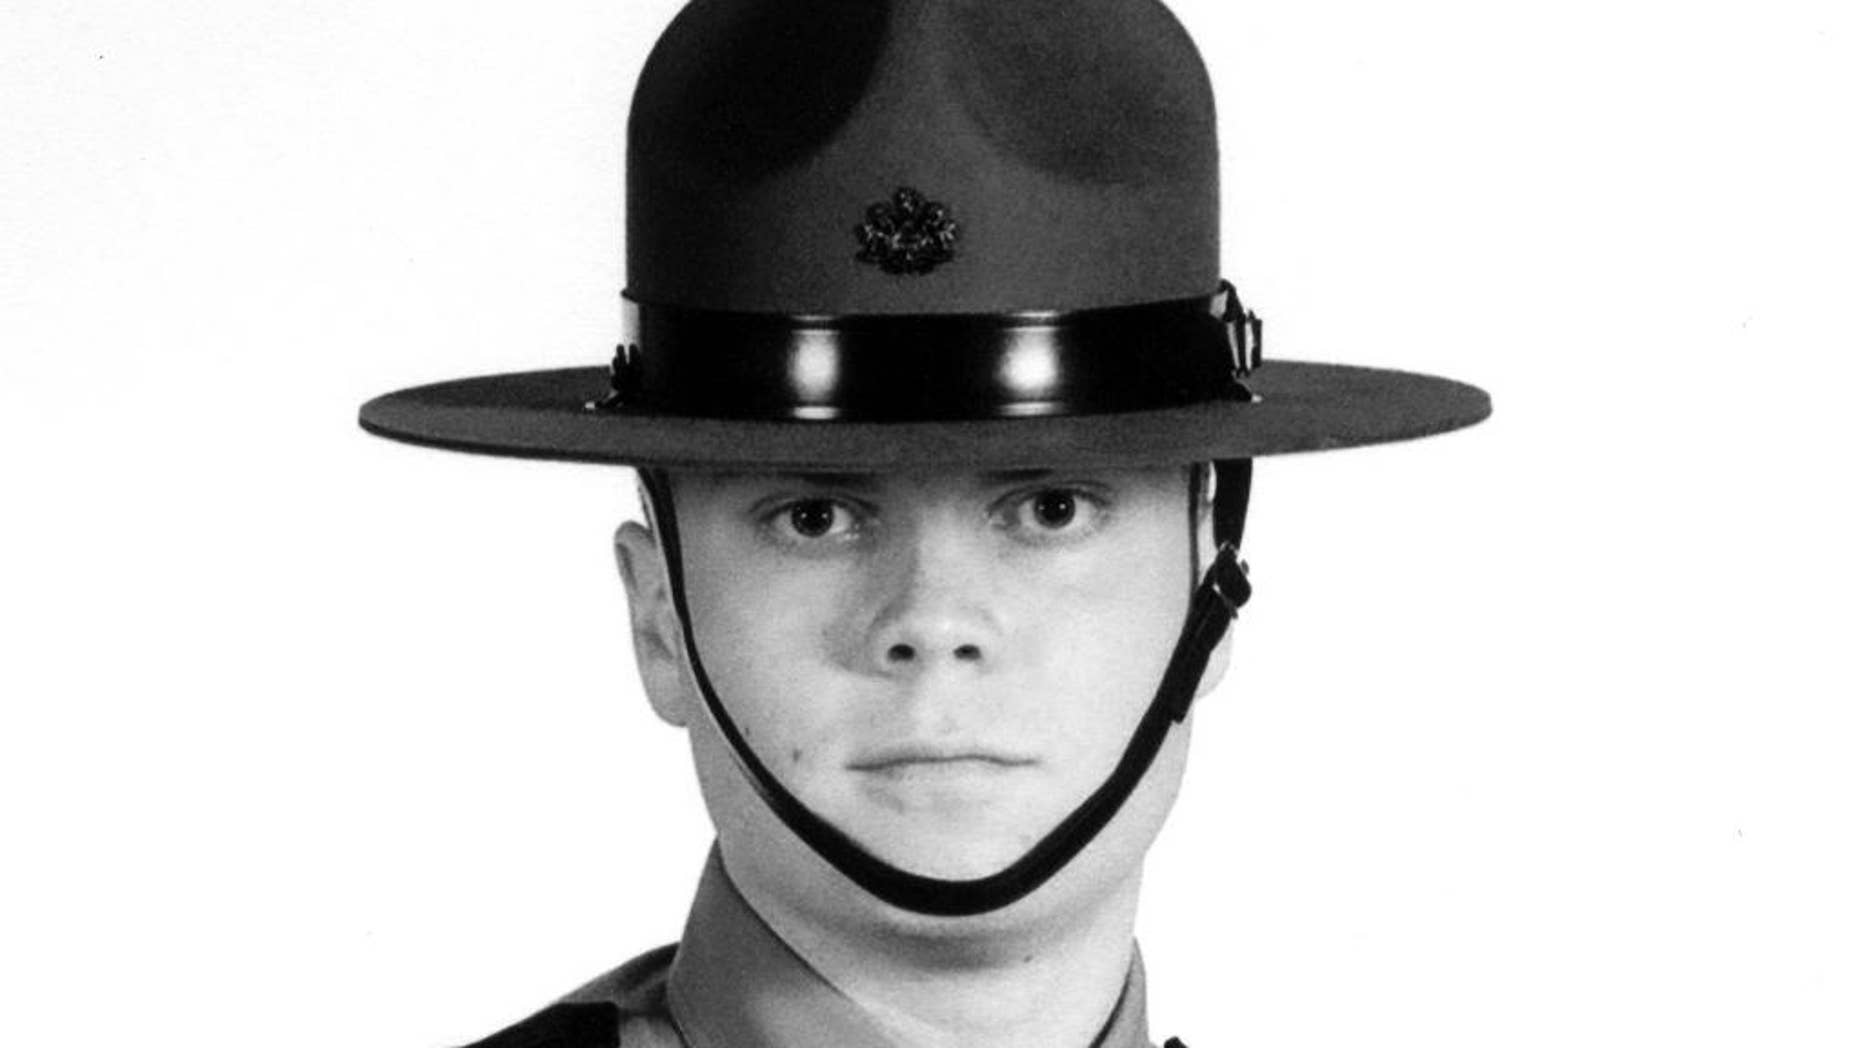 FILE - This undated file photo provided by the Pennsylvania State Police shows Trooper Alex Douglass. Douglass, wounded in the Sept. 12 shooting outside the Blooming Grove barracks that killed Cpl. Bryon Dickson, made his first public remarks Saturday, March 28, 2015, as the borough of Dunmore named a road after Dickson. Douglass, who walked with a cane, told reporters he feels good and no longer needs crutches to get around. He says he has had 16 surgeries with one more scheduled next month. (AP Photo/Pennsylvania State Police, File)